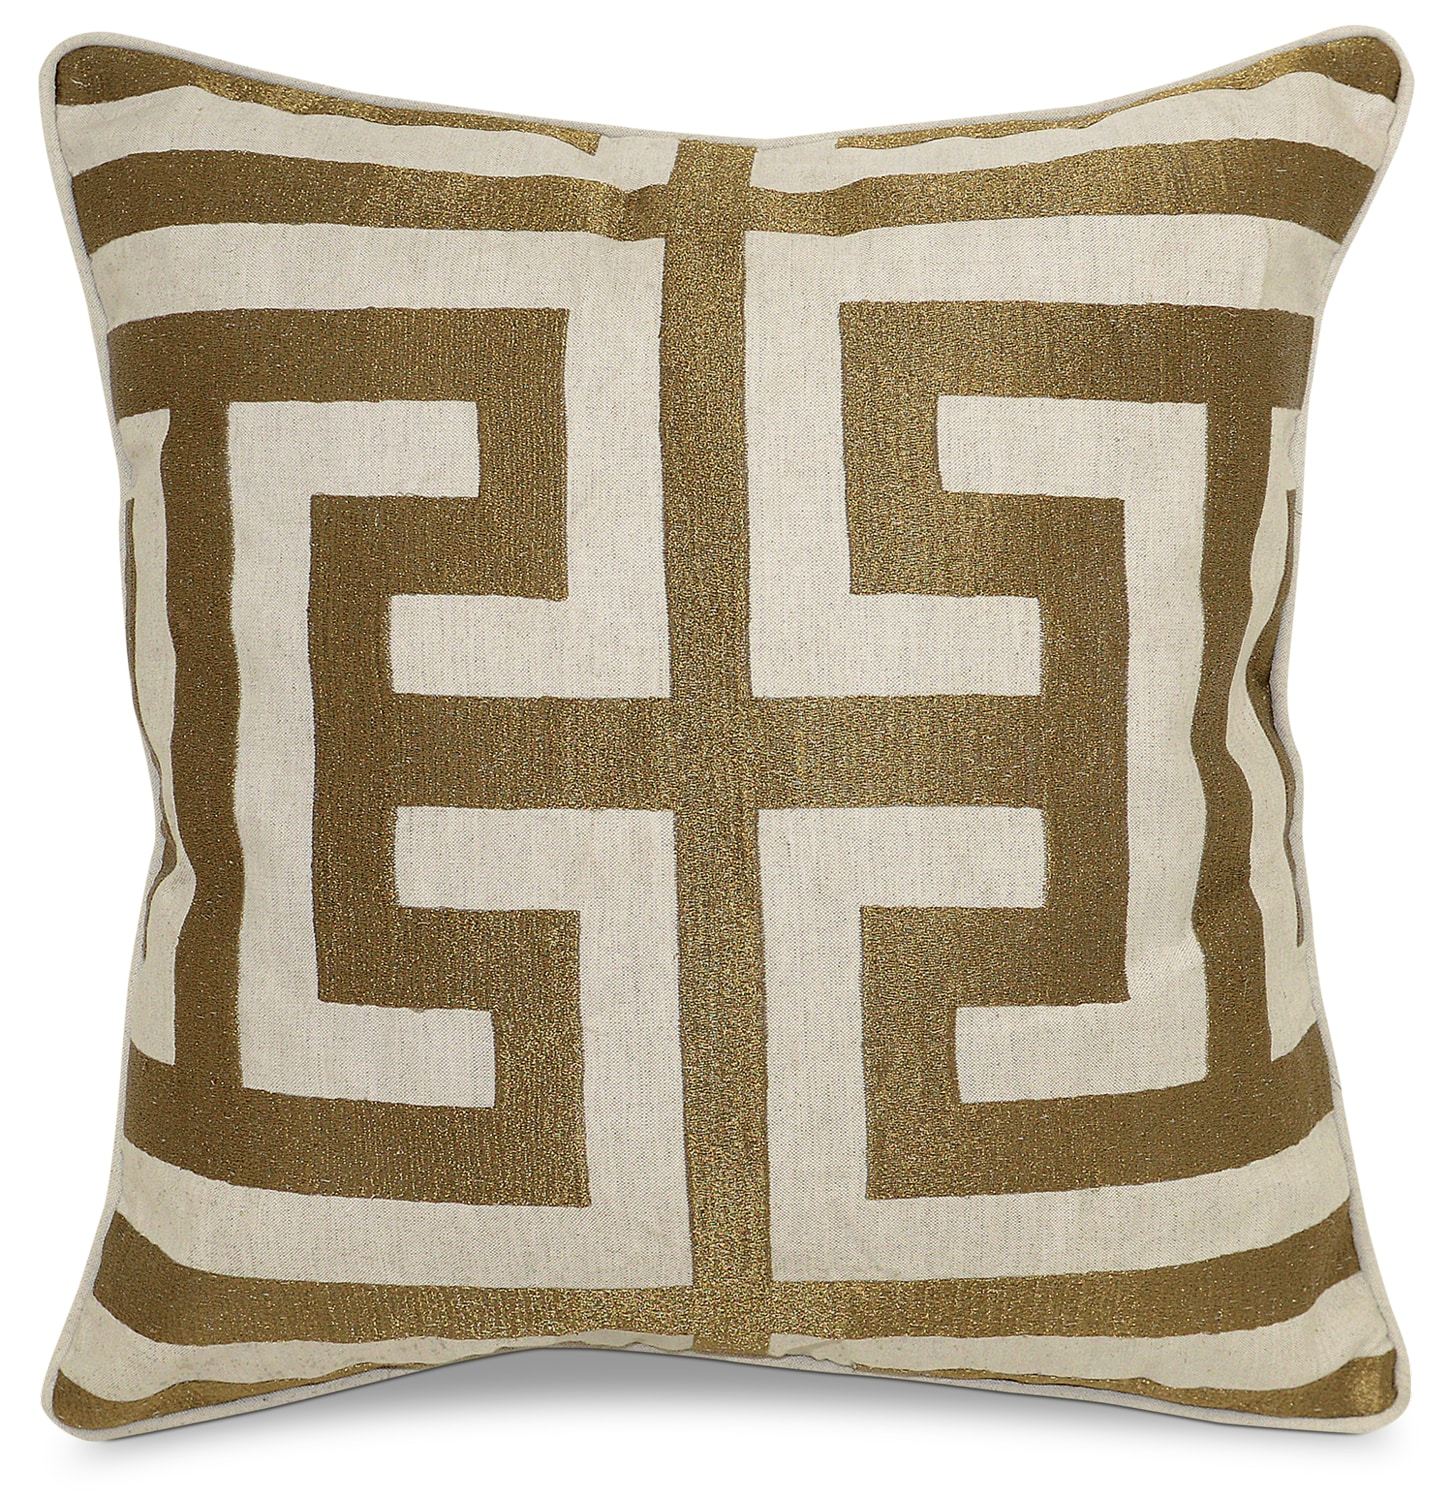 Greek Key Decorative Pillows Part - 18: Click To Change Image.